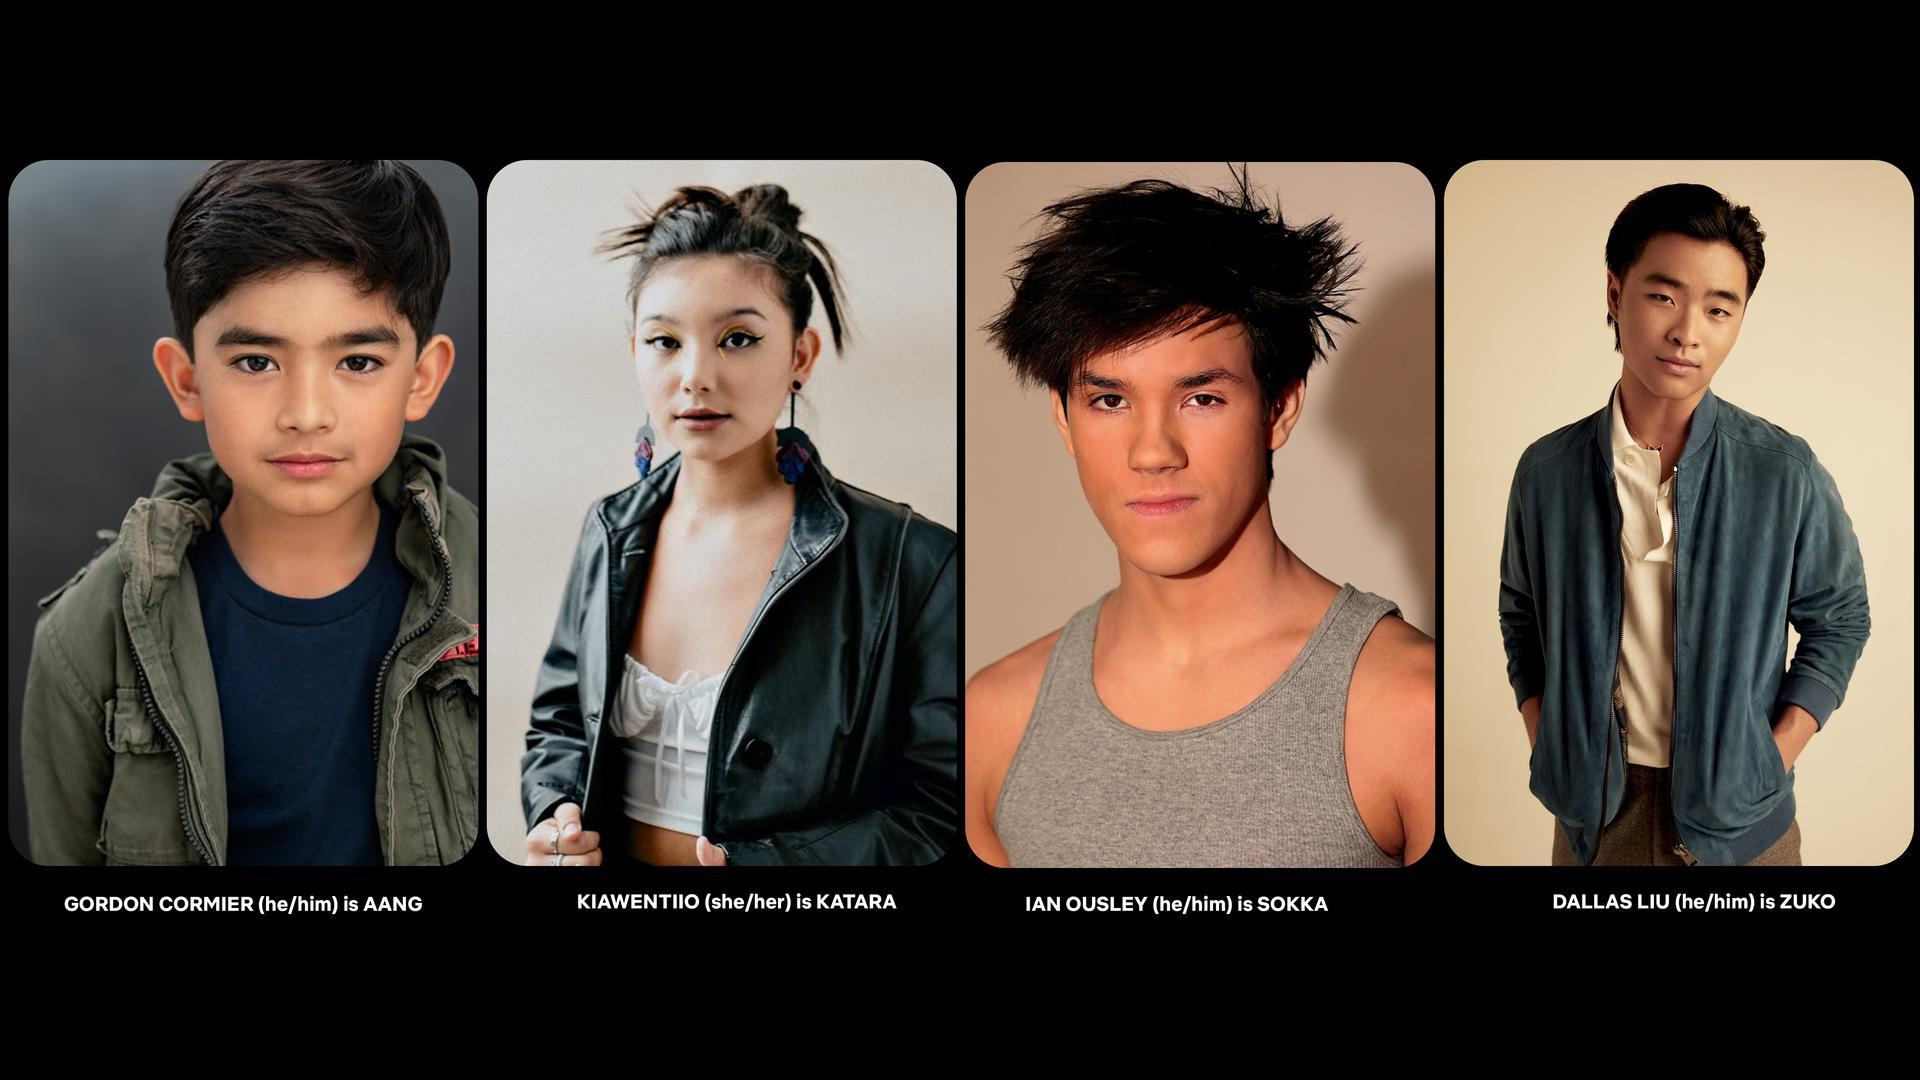 www.yahoo.com: Live-Action AVATAR: THE LAST AIRBENDER Announces Its Cast